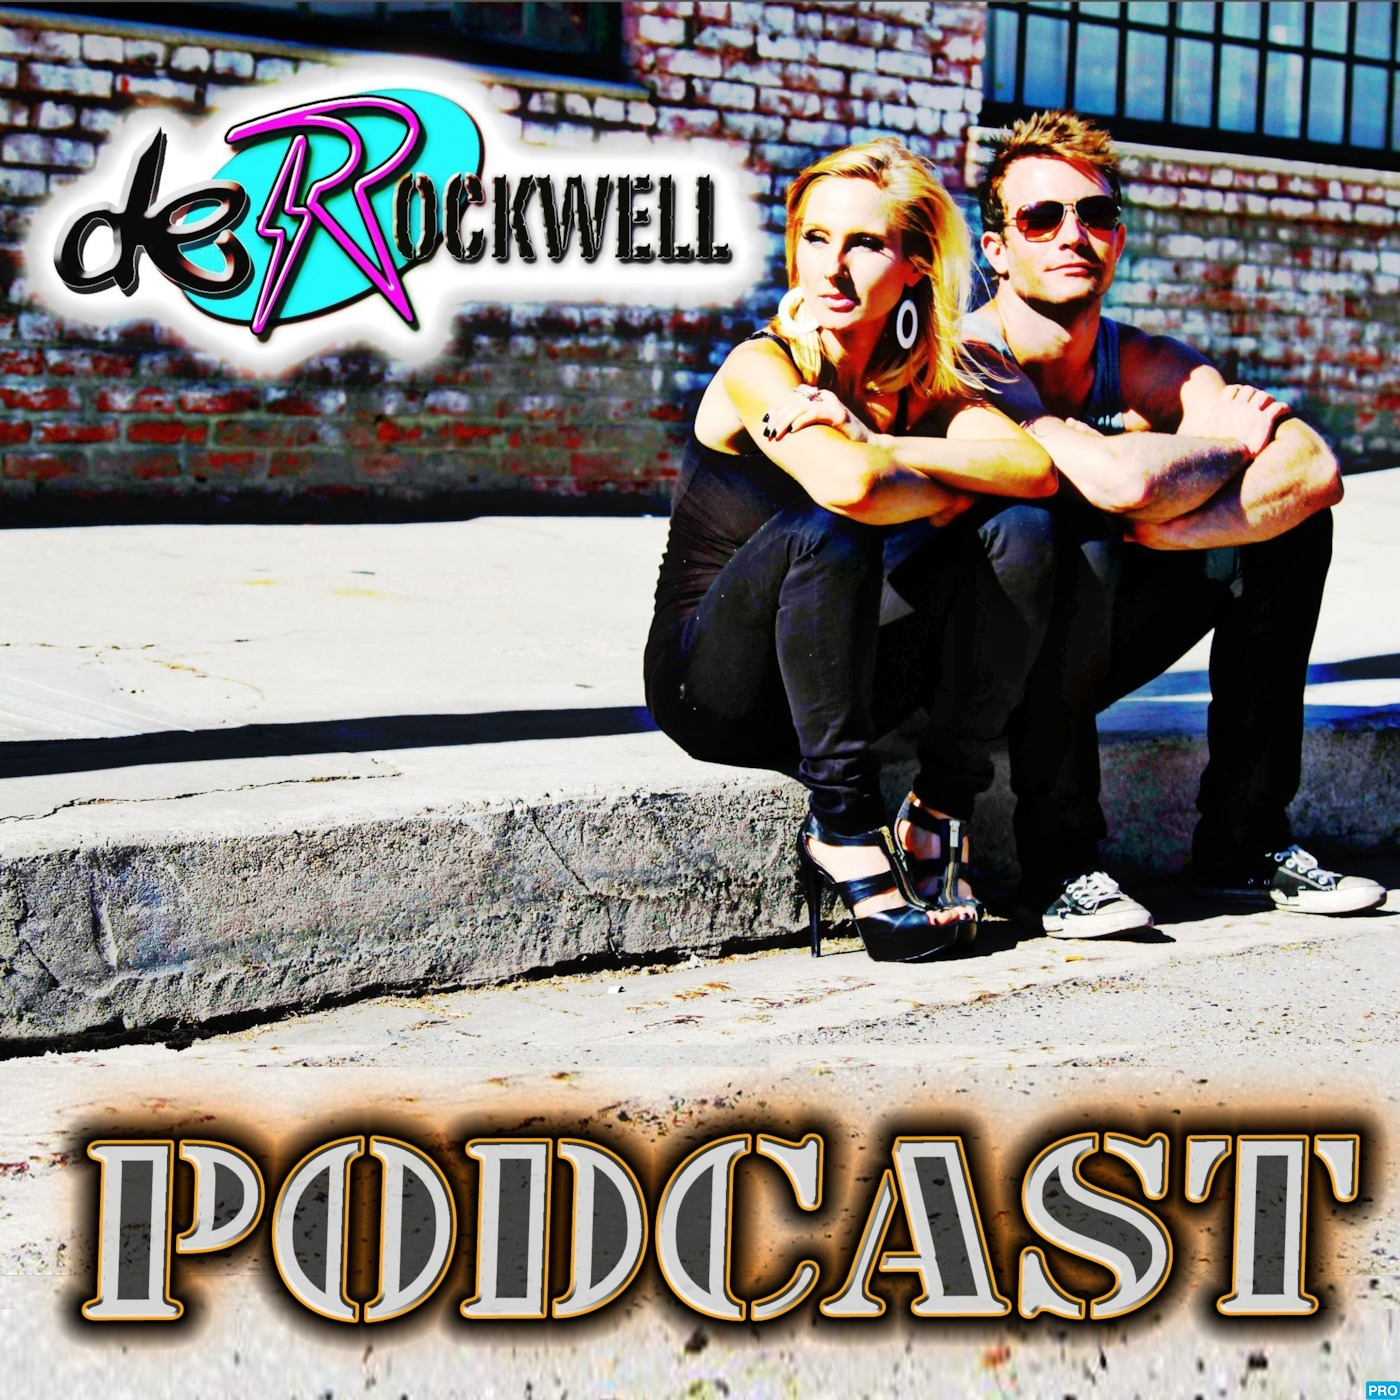 dEX ROCKWELL's Podcast